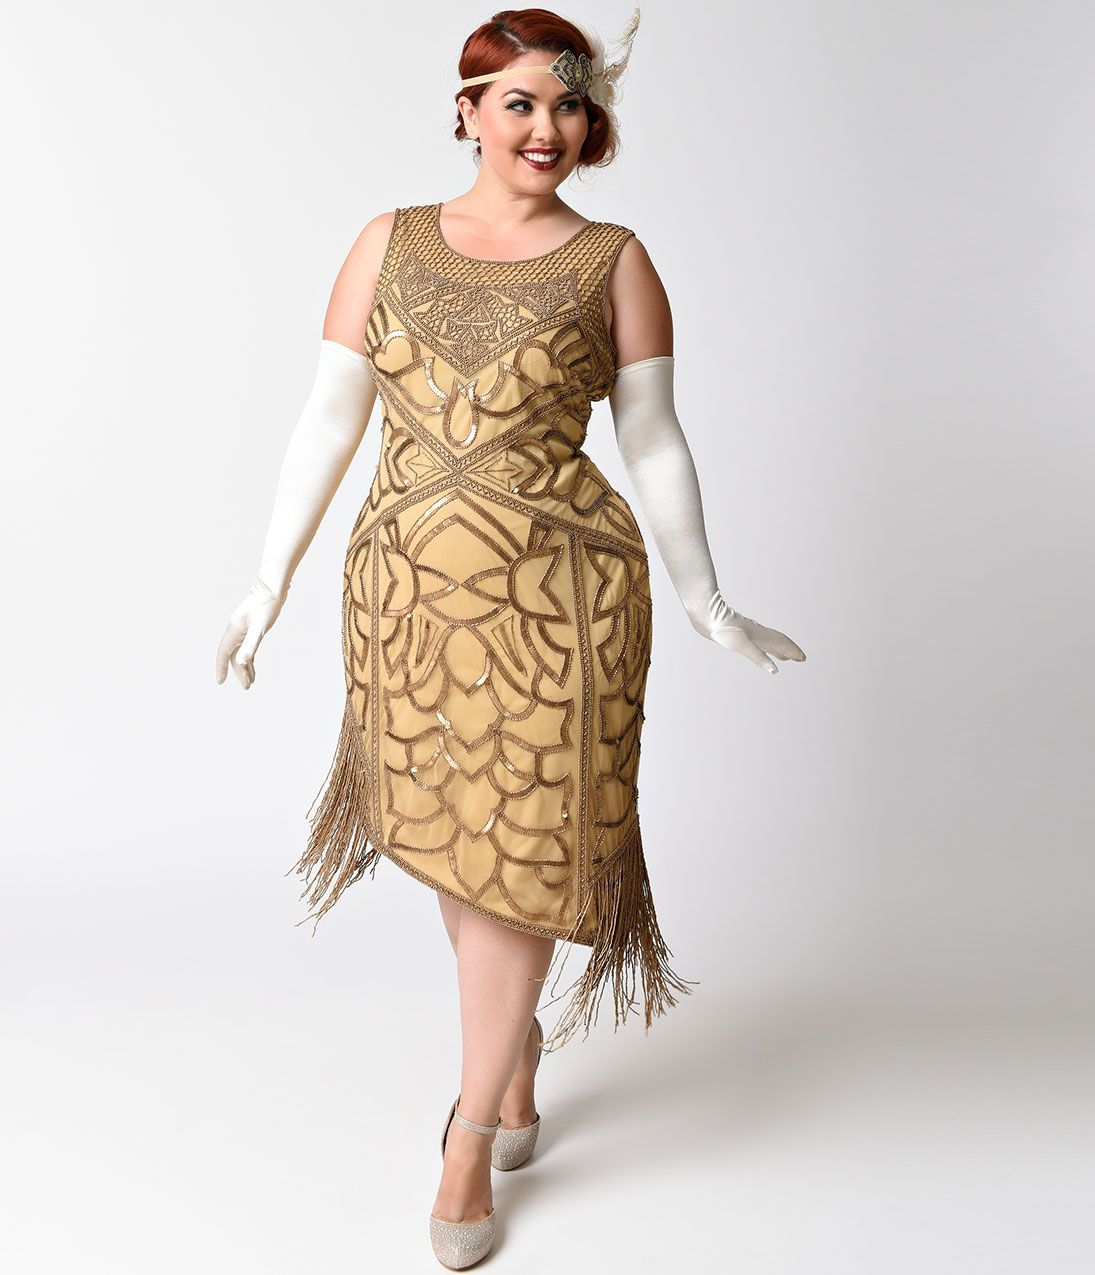 Shop 1920s Plus Size Dresses and Costumes | Flapper style dresses ...